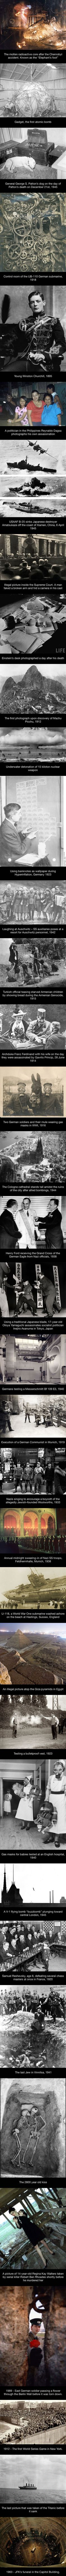 36 rare photographs of history - 9GAG